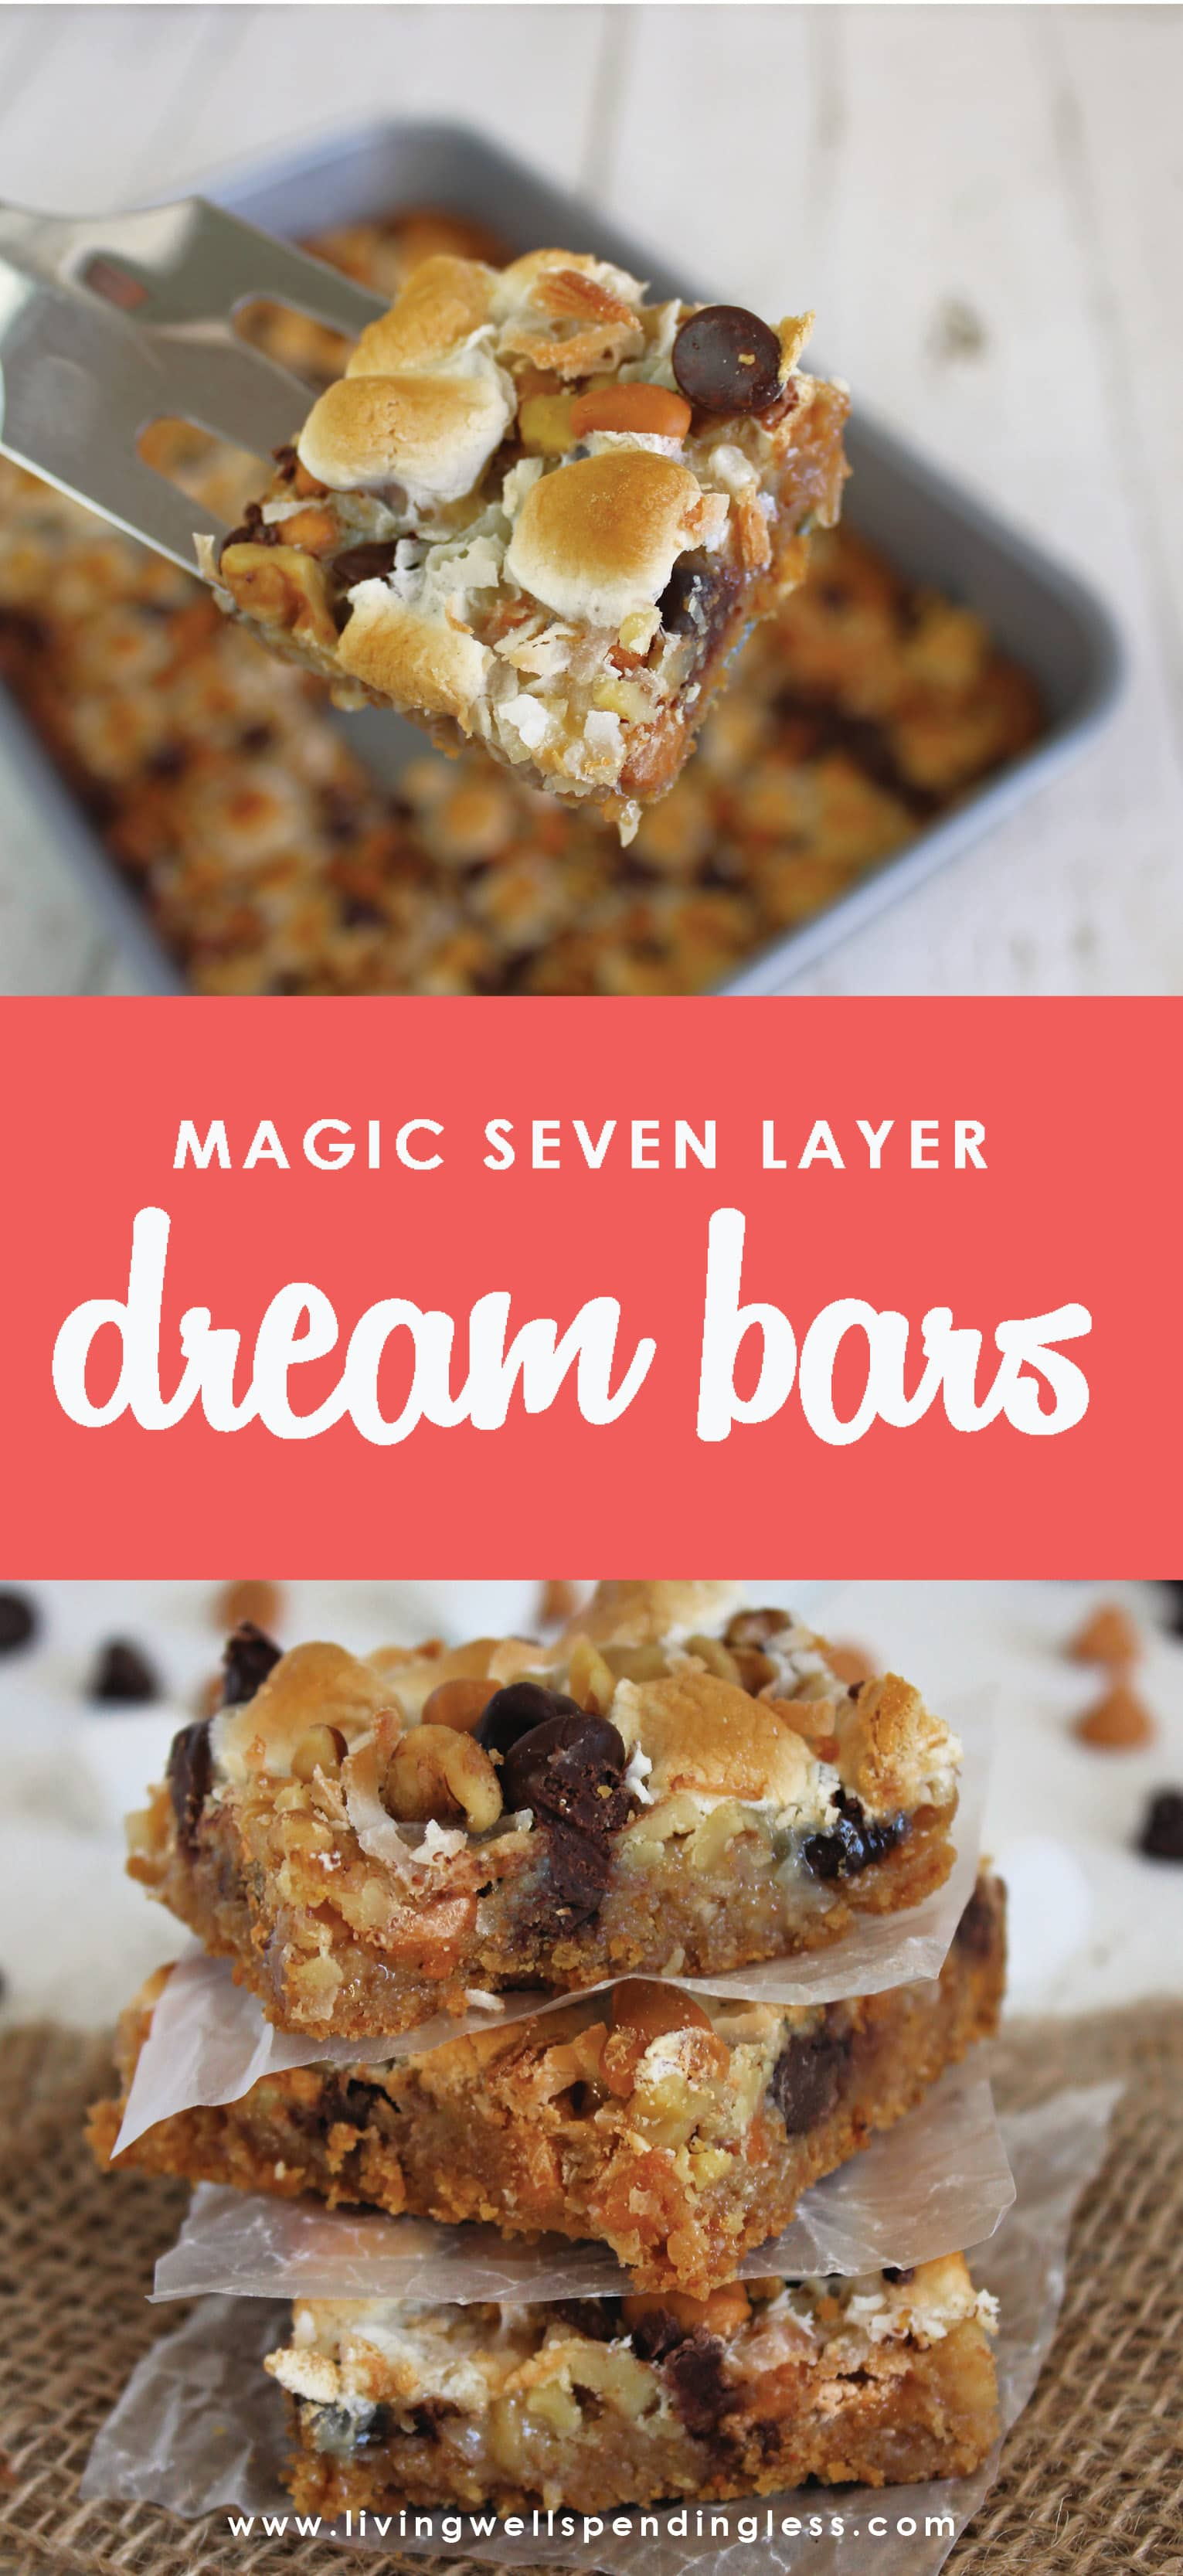 Looking for a simple dessert recipe the kids can make? Look no further, this 7 layer bar recipe is pure deliciousness! And ready in less than 30 minutes.